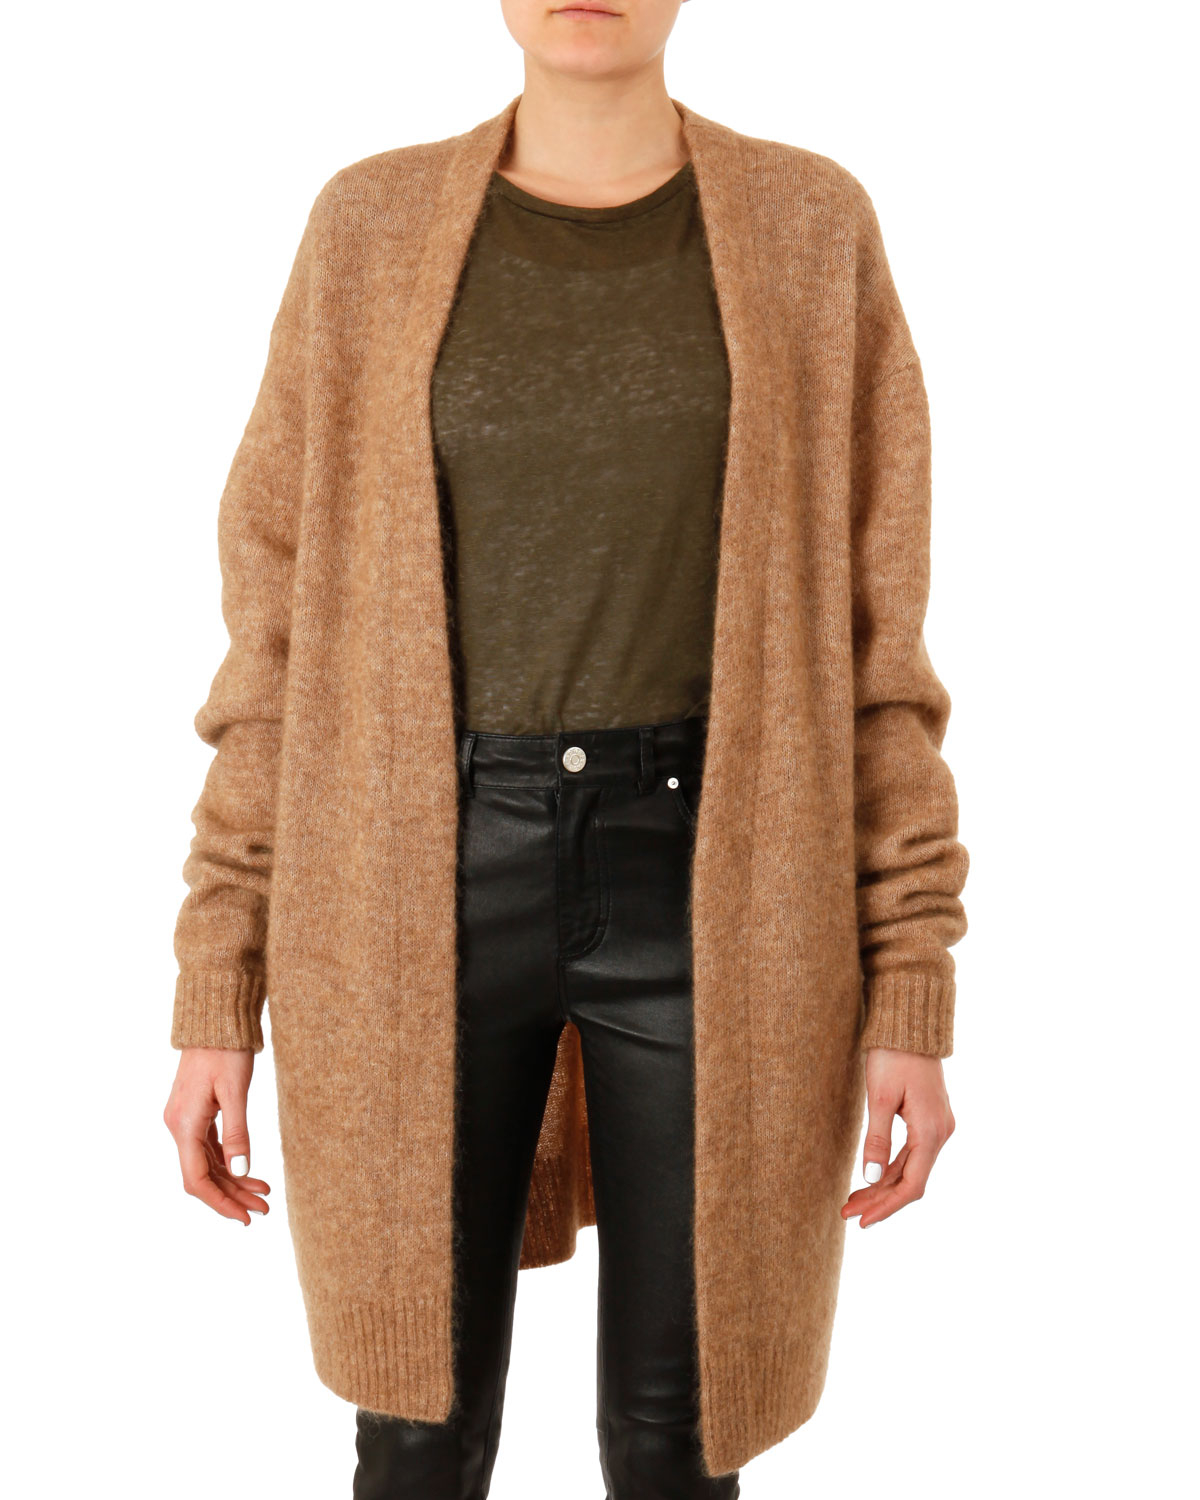 Acne studios Raya Oversized Knit Cardigan in Brown | Lyst